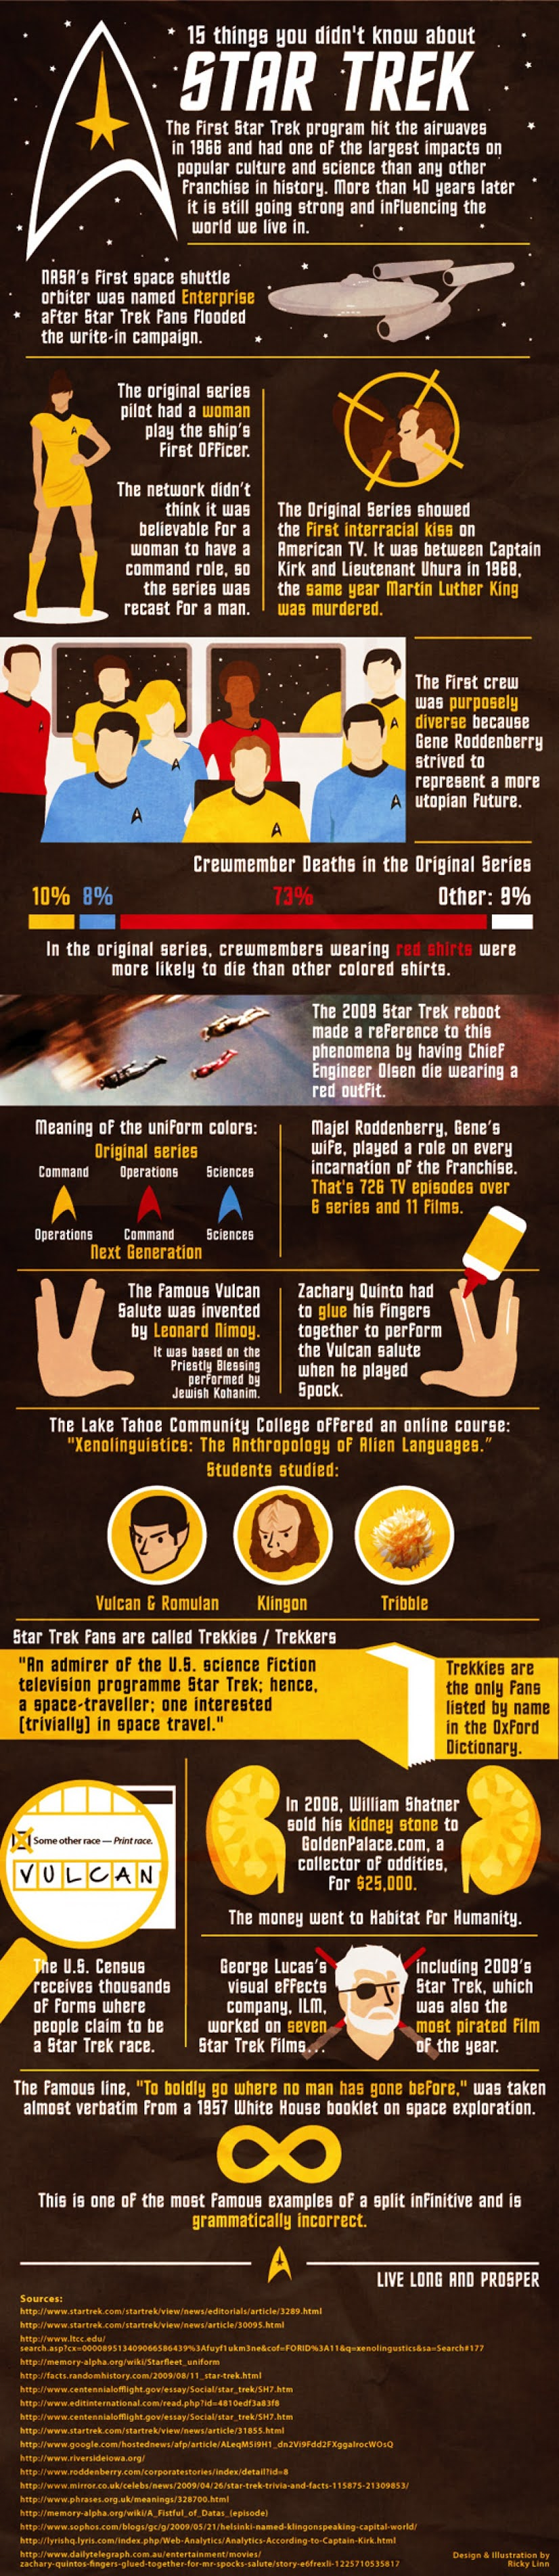 15 Things You Didn't Know About Star Trek #infographic